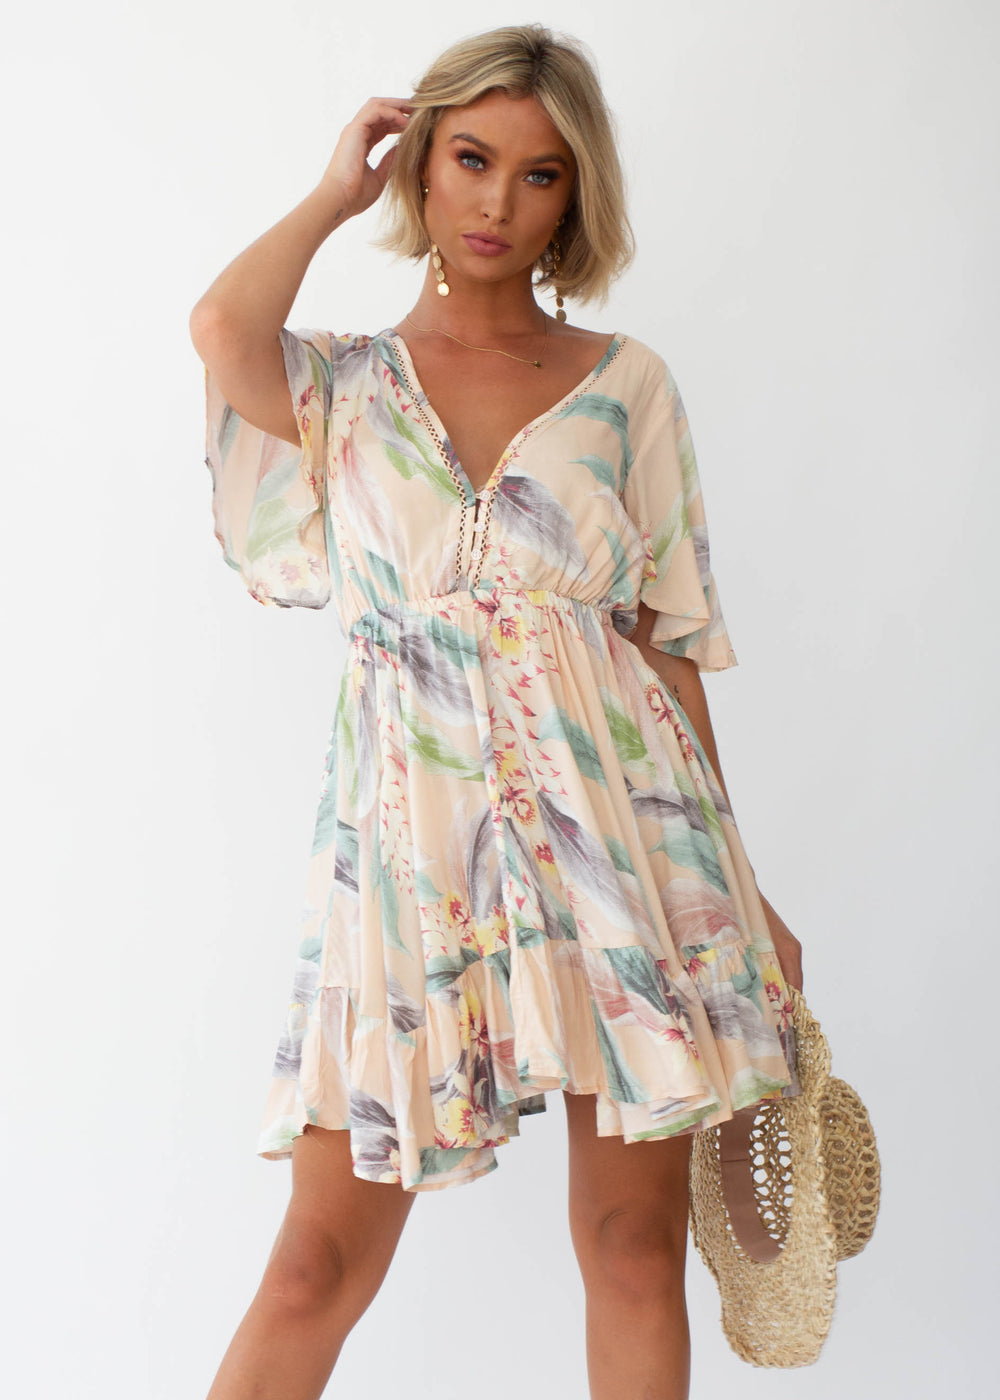 Bambi Swing Dress - Cassie